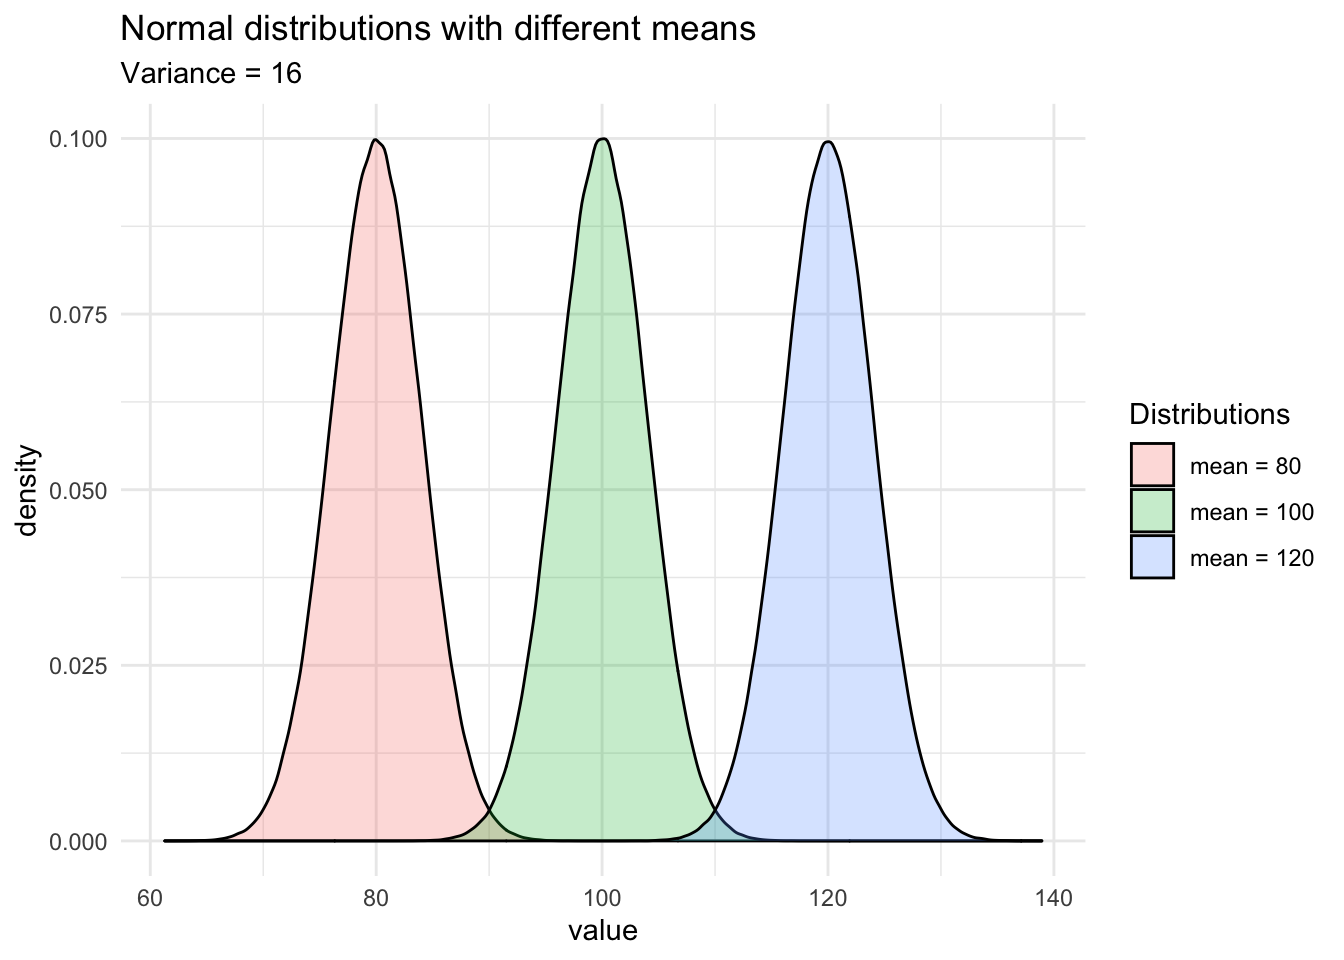 Do my data follow a normal distribution ? A note on the most widely used distribution and how to test for normality in R